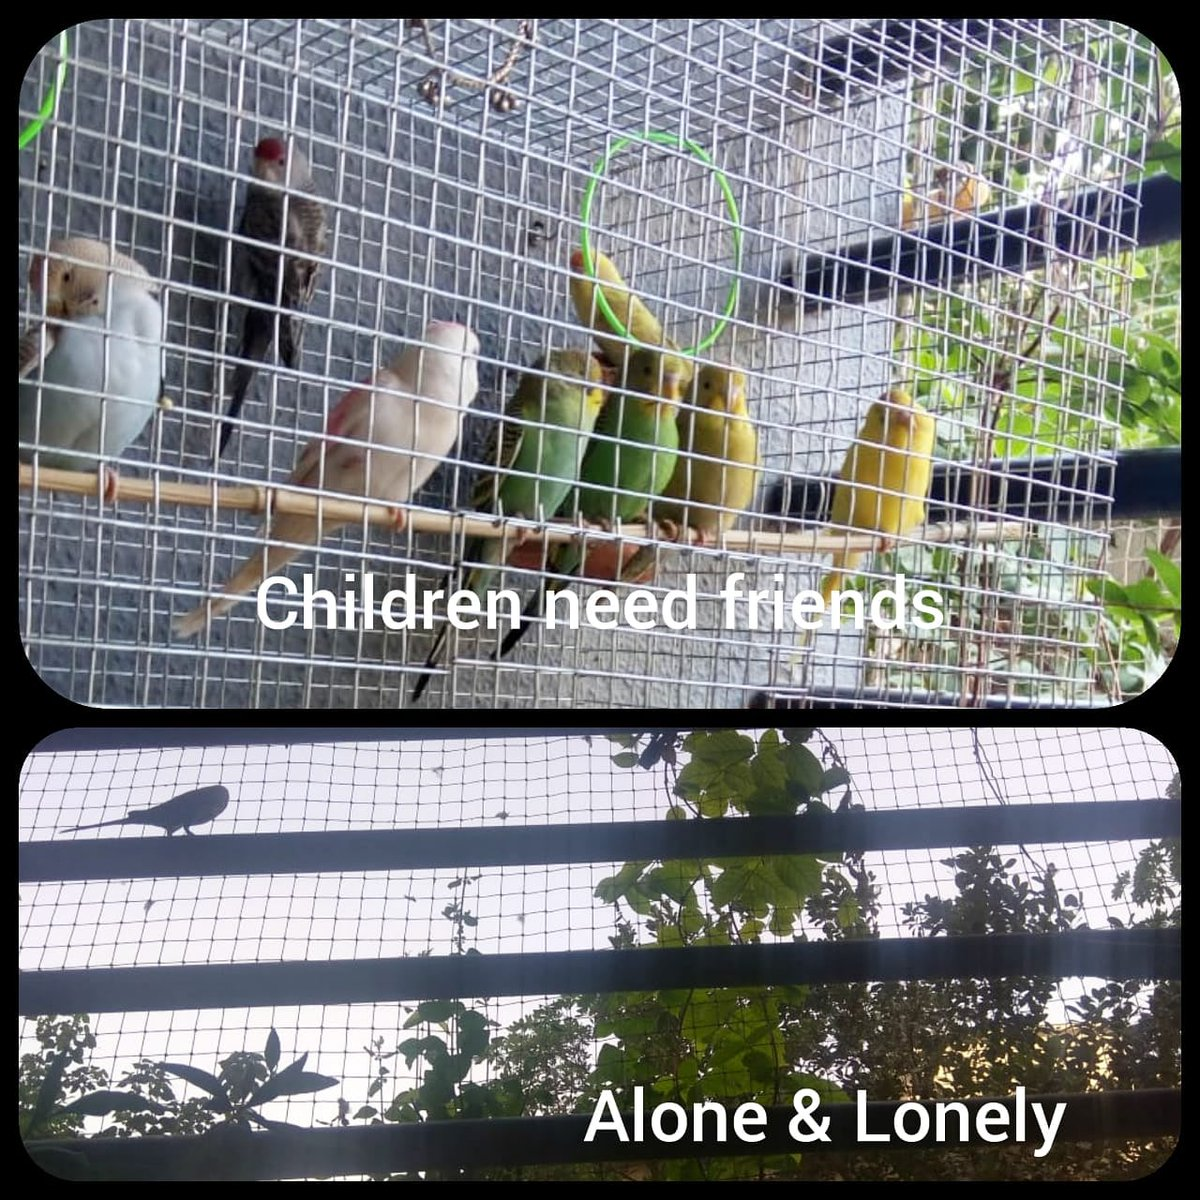 This picture brings out a contrast. Though caged friends create a difference.  The extended Corona situation is creating concerns about children's psychological development. Children need friends to play and grow. Playgrounds are empty. Schools are empty. #Missing #schools#MPS https://t.co/o5ptQMhm2d